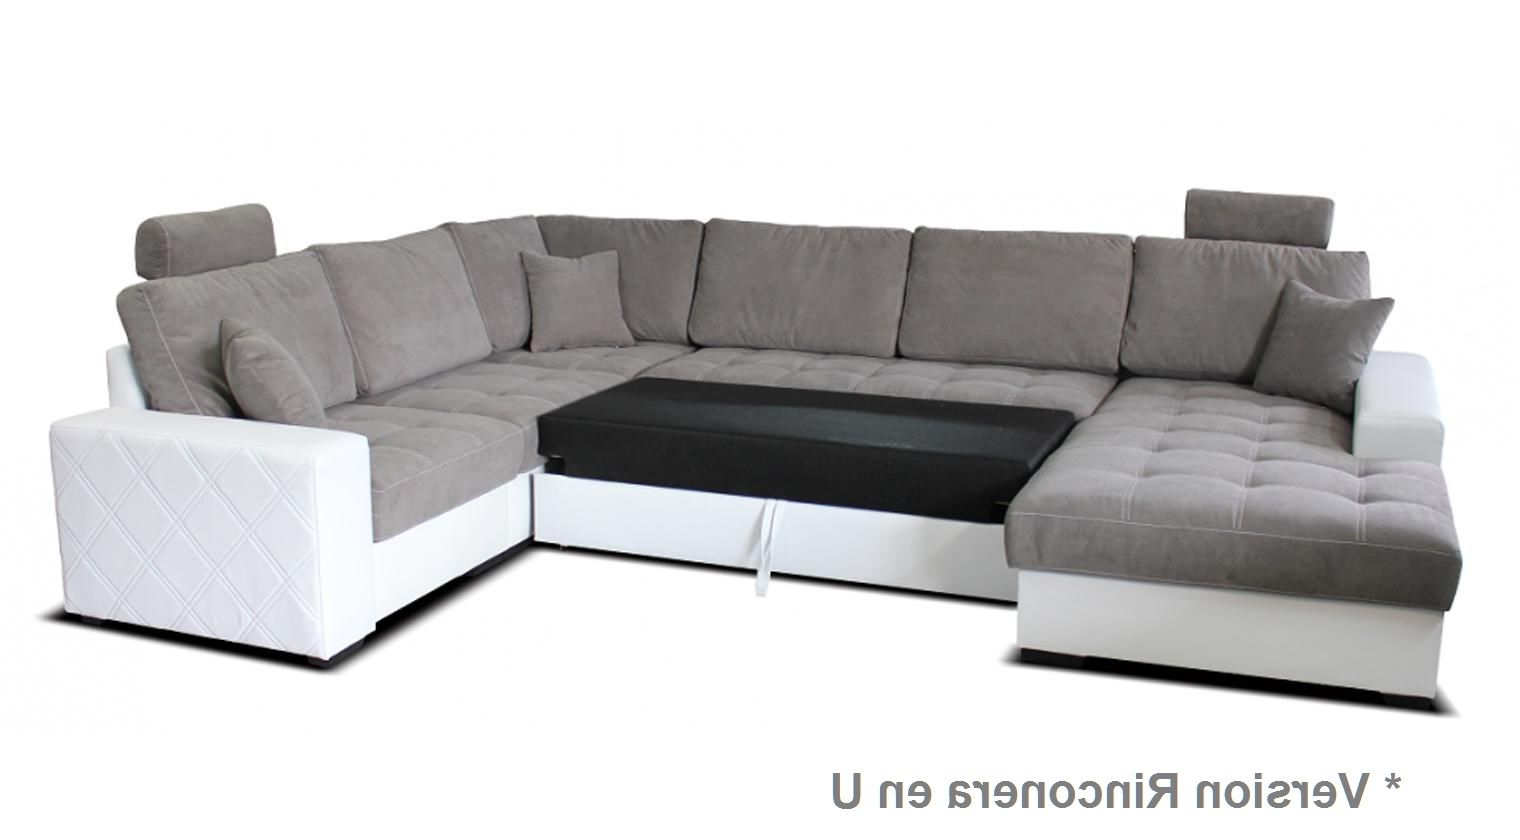 Sofas Chaise Longue 5 Plazas 0gdr sofa 5 Plazas Chaise Longue 7065